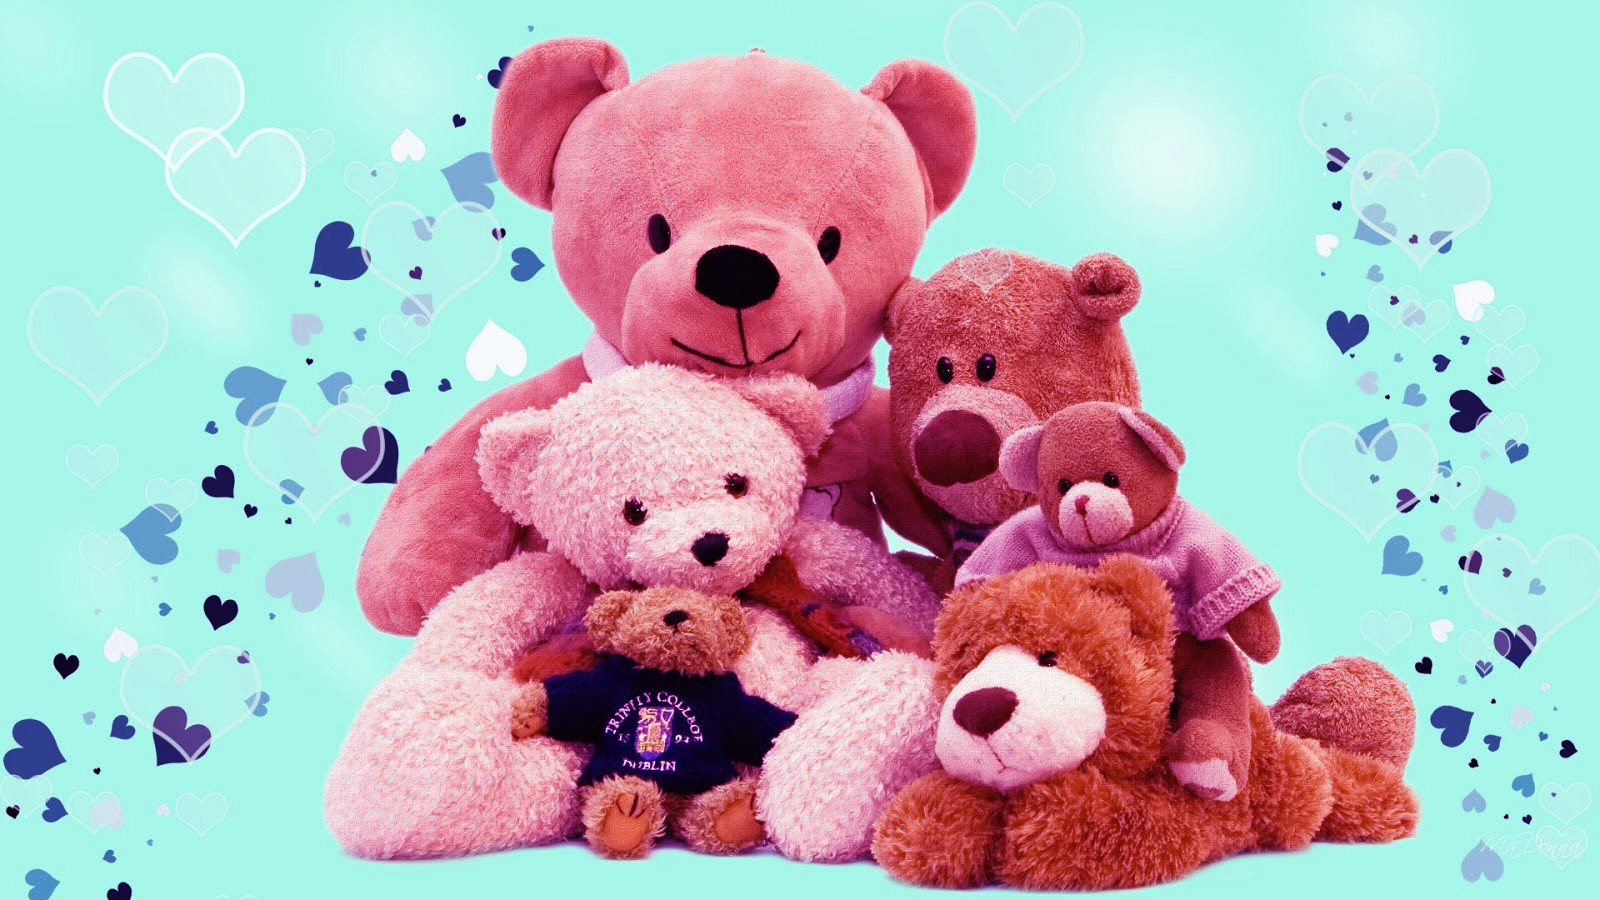 Teddy Bear Day 2017 HD Wallpaper